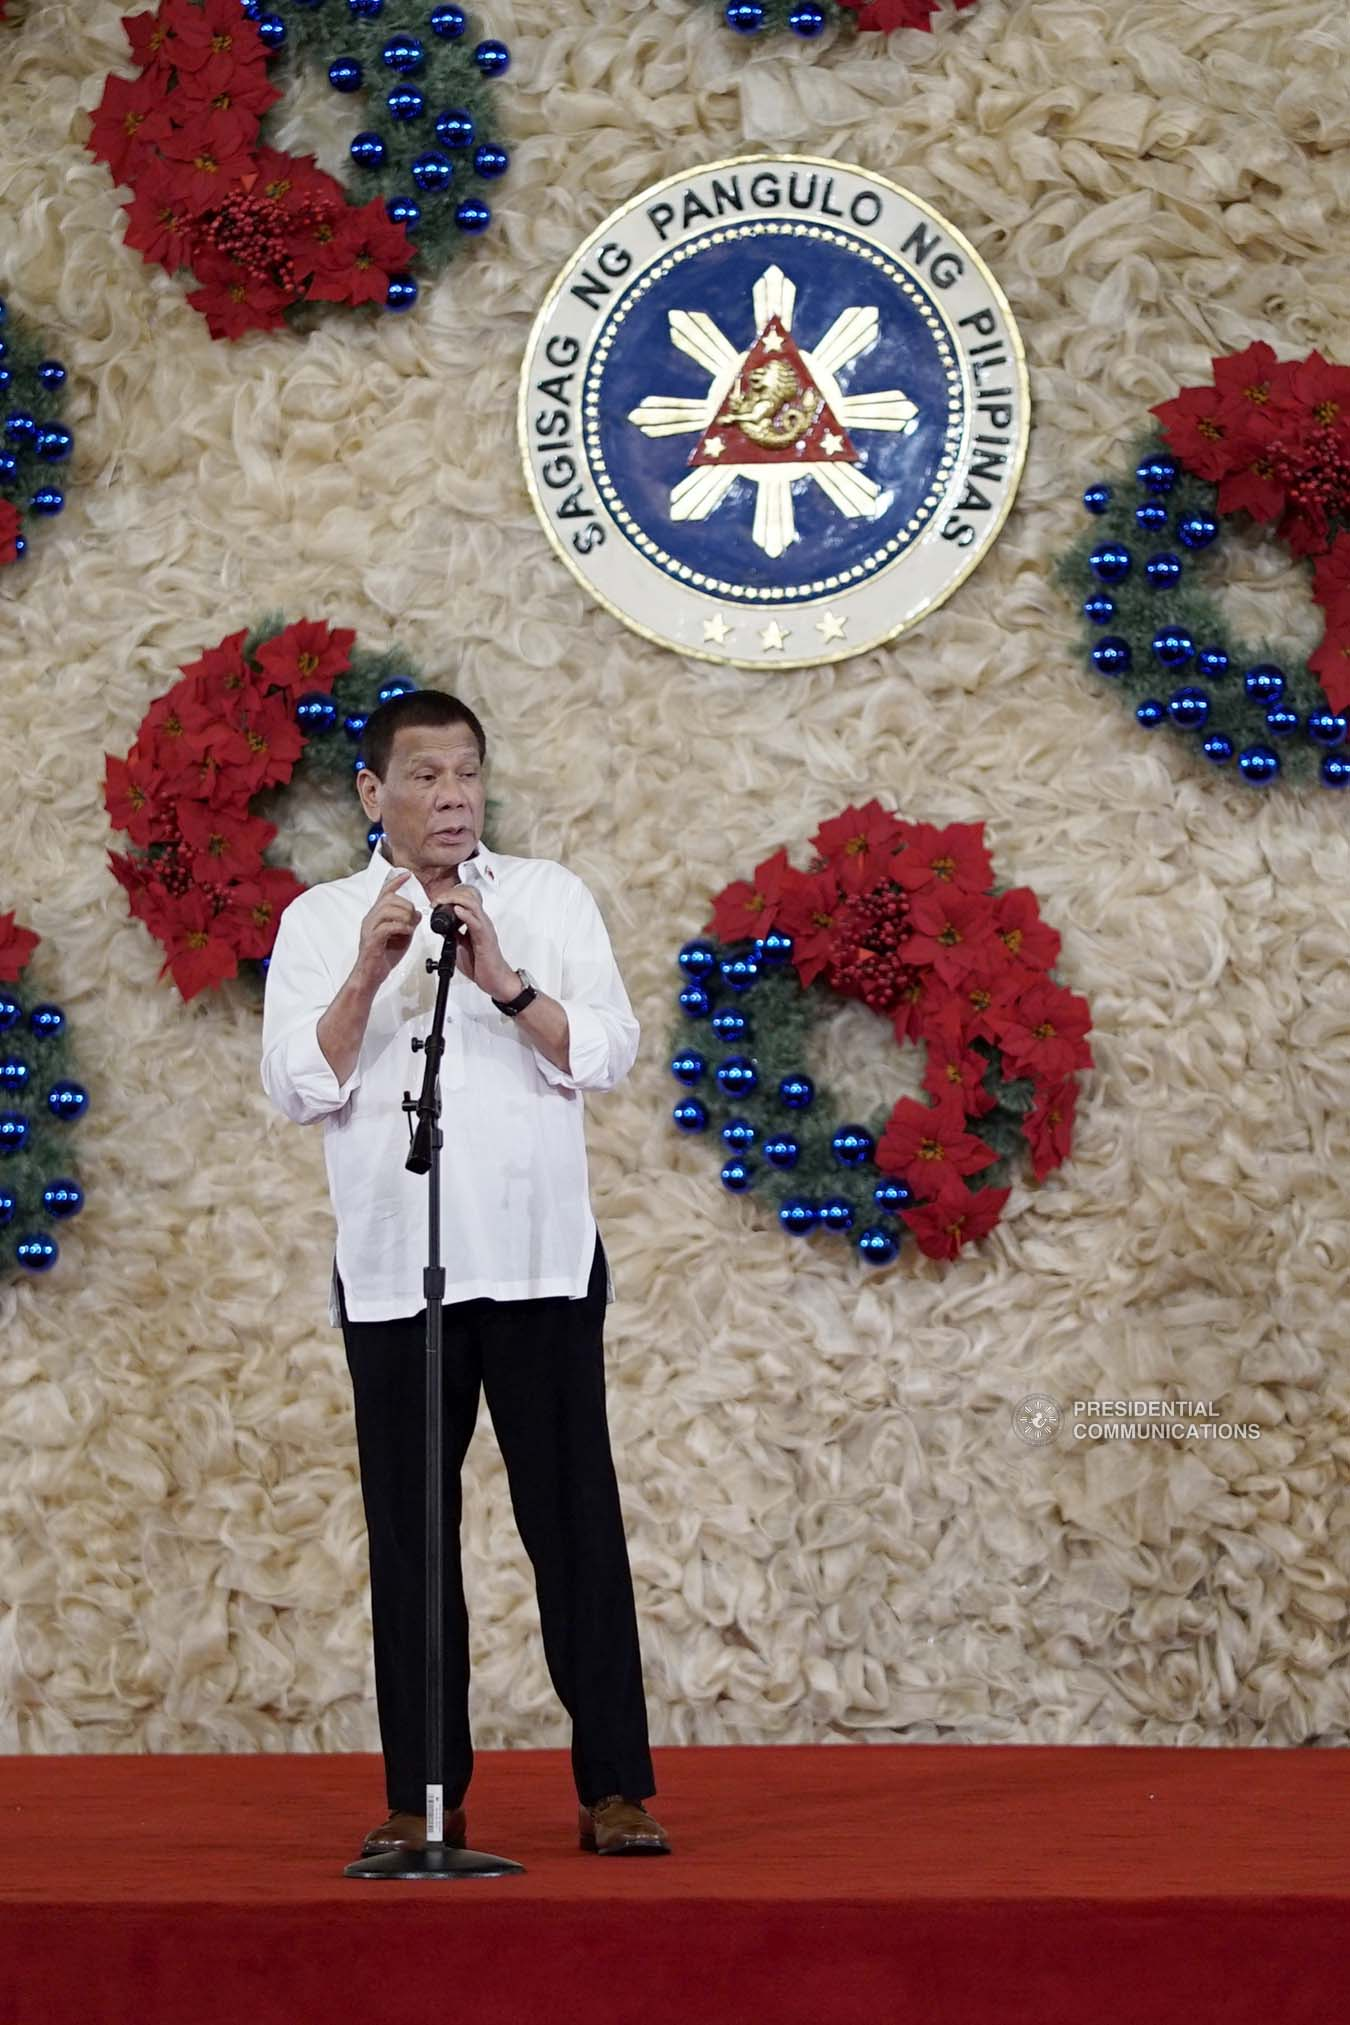 President Rodrigo Roa Duterte delivers his speech during the oath-taking ceremony of the newly promoted uniformed personnel of the Bureau of Fire Protection, Bureau of Jail Management and Penology and Philippine Coast Guard at the Malacañan Palace on December 10, 2019. KING RODRIGUEZ/PRESIDENTIAL PHOTO